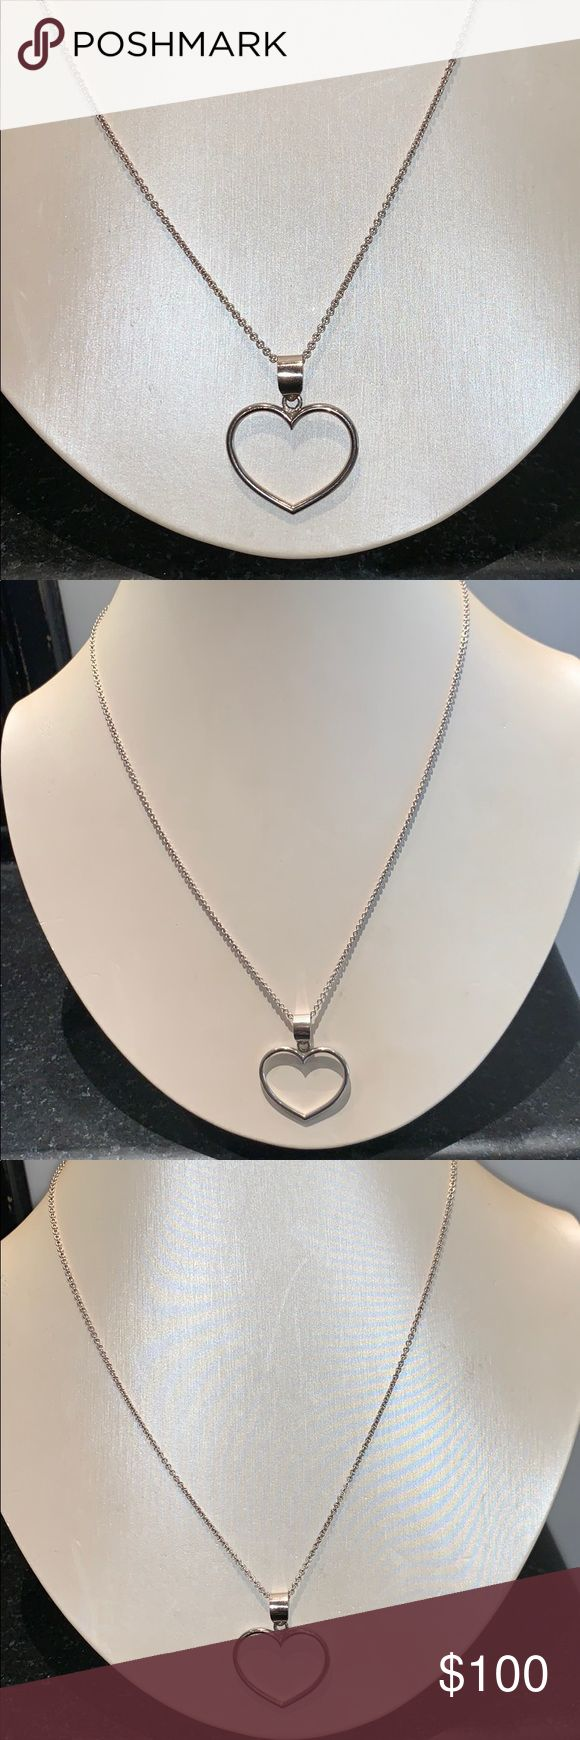 Silver heart pendant necklace Brand new from Istan…